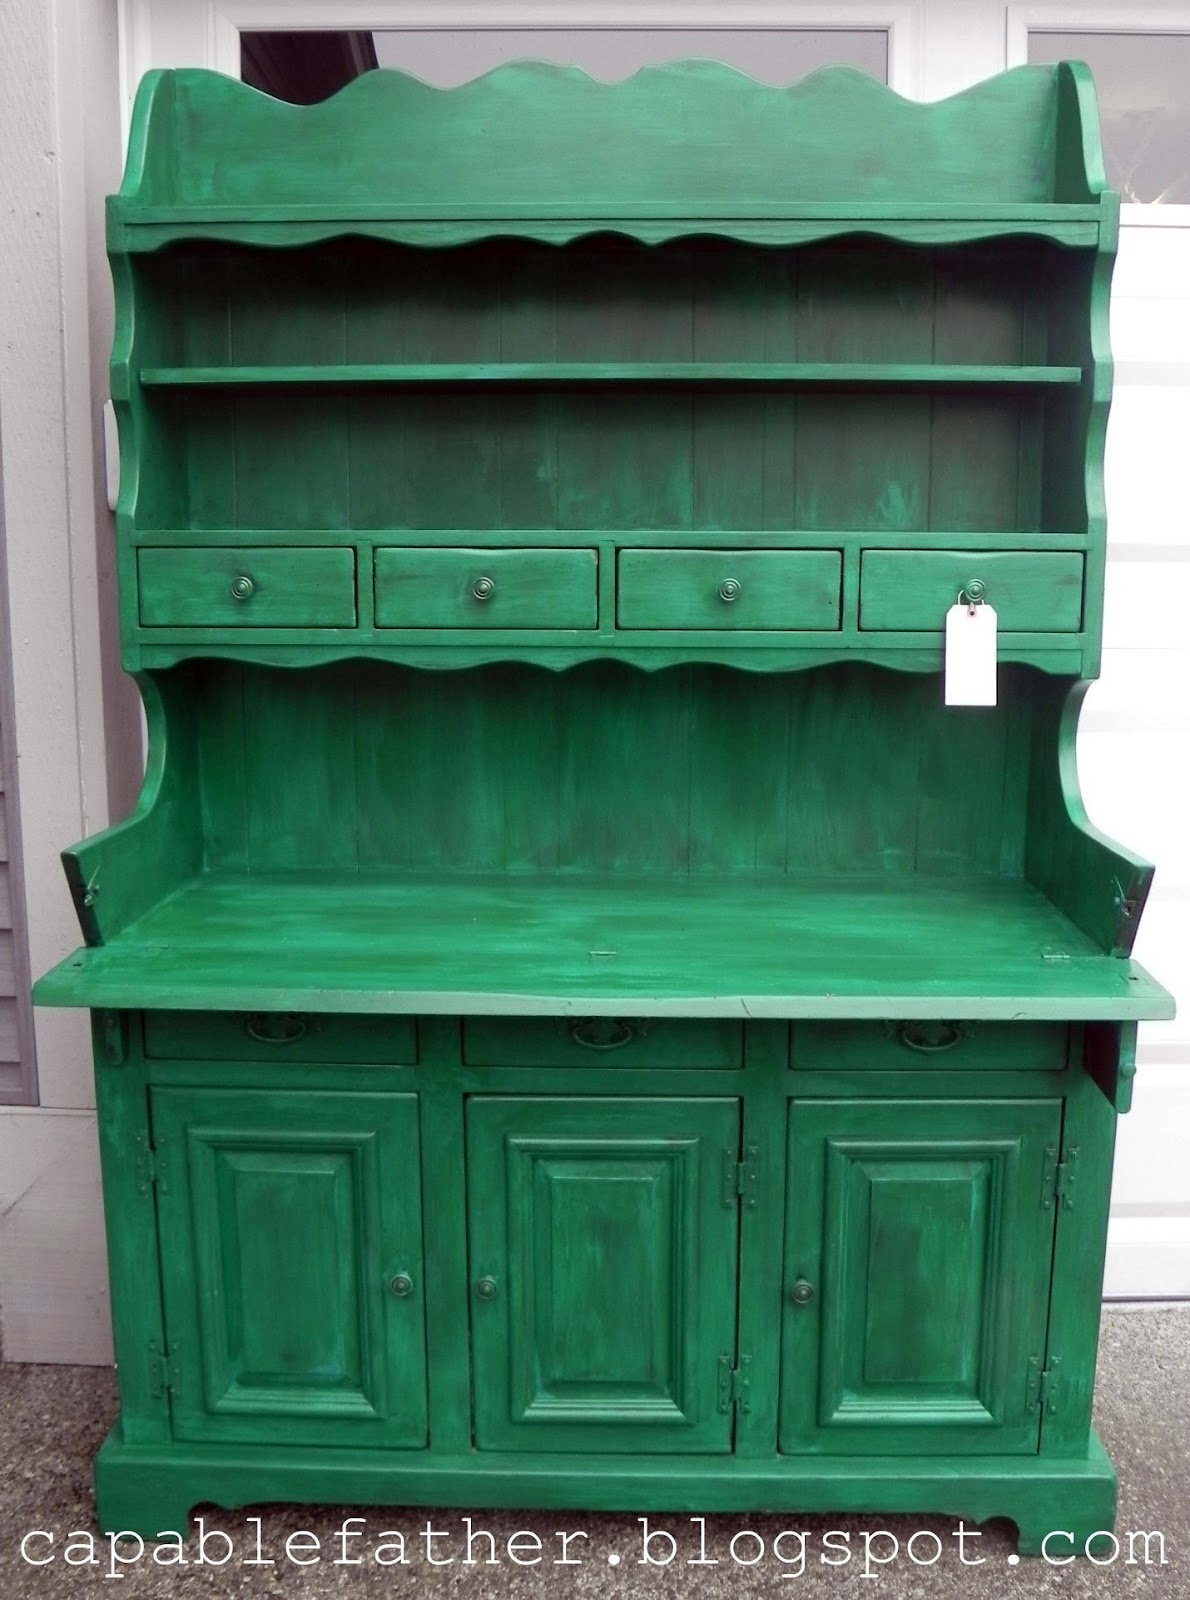 antique dry sink hutch Capable Father: Currently for Sale antique dry sink hutch